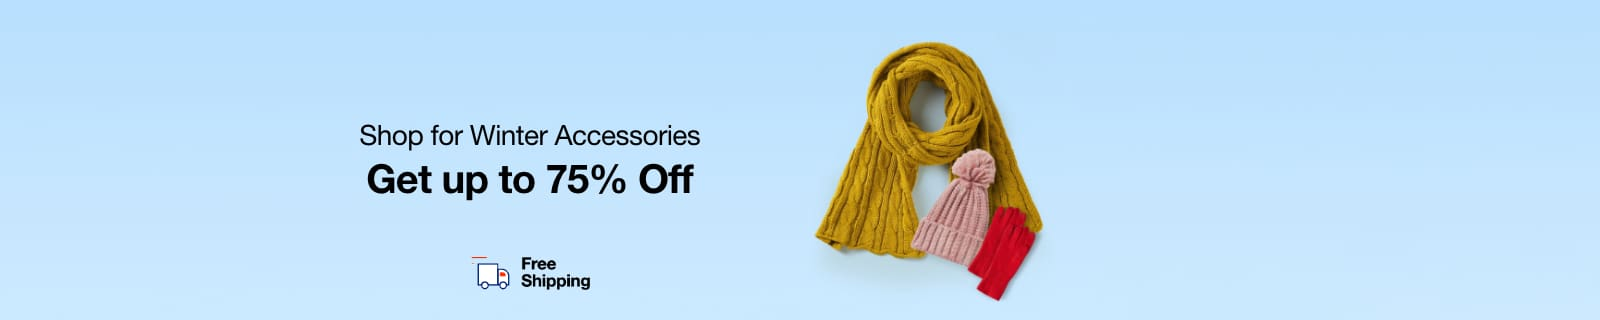 Winter Accessories | Up to 75% Off